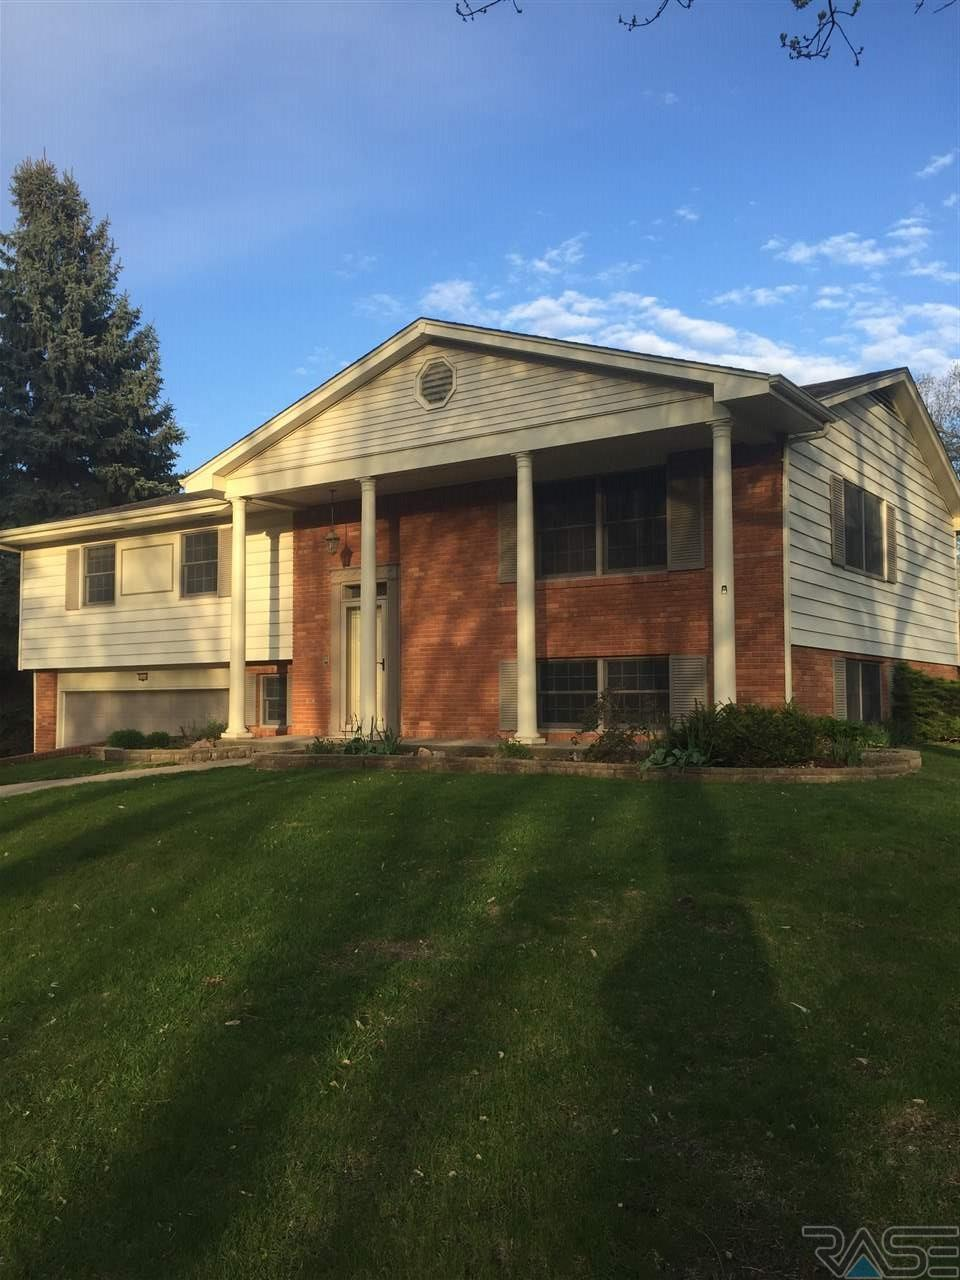 2404 S Garfield Ave, Sioux Falls, SD 57105